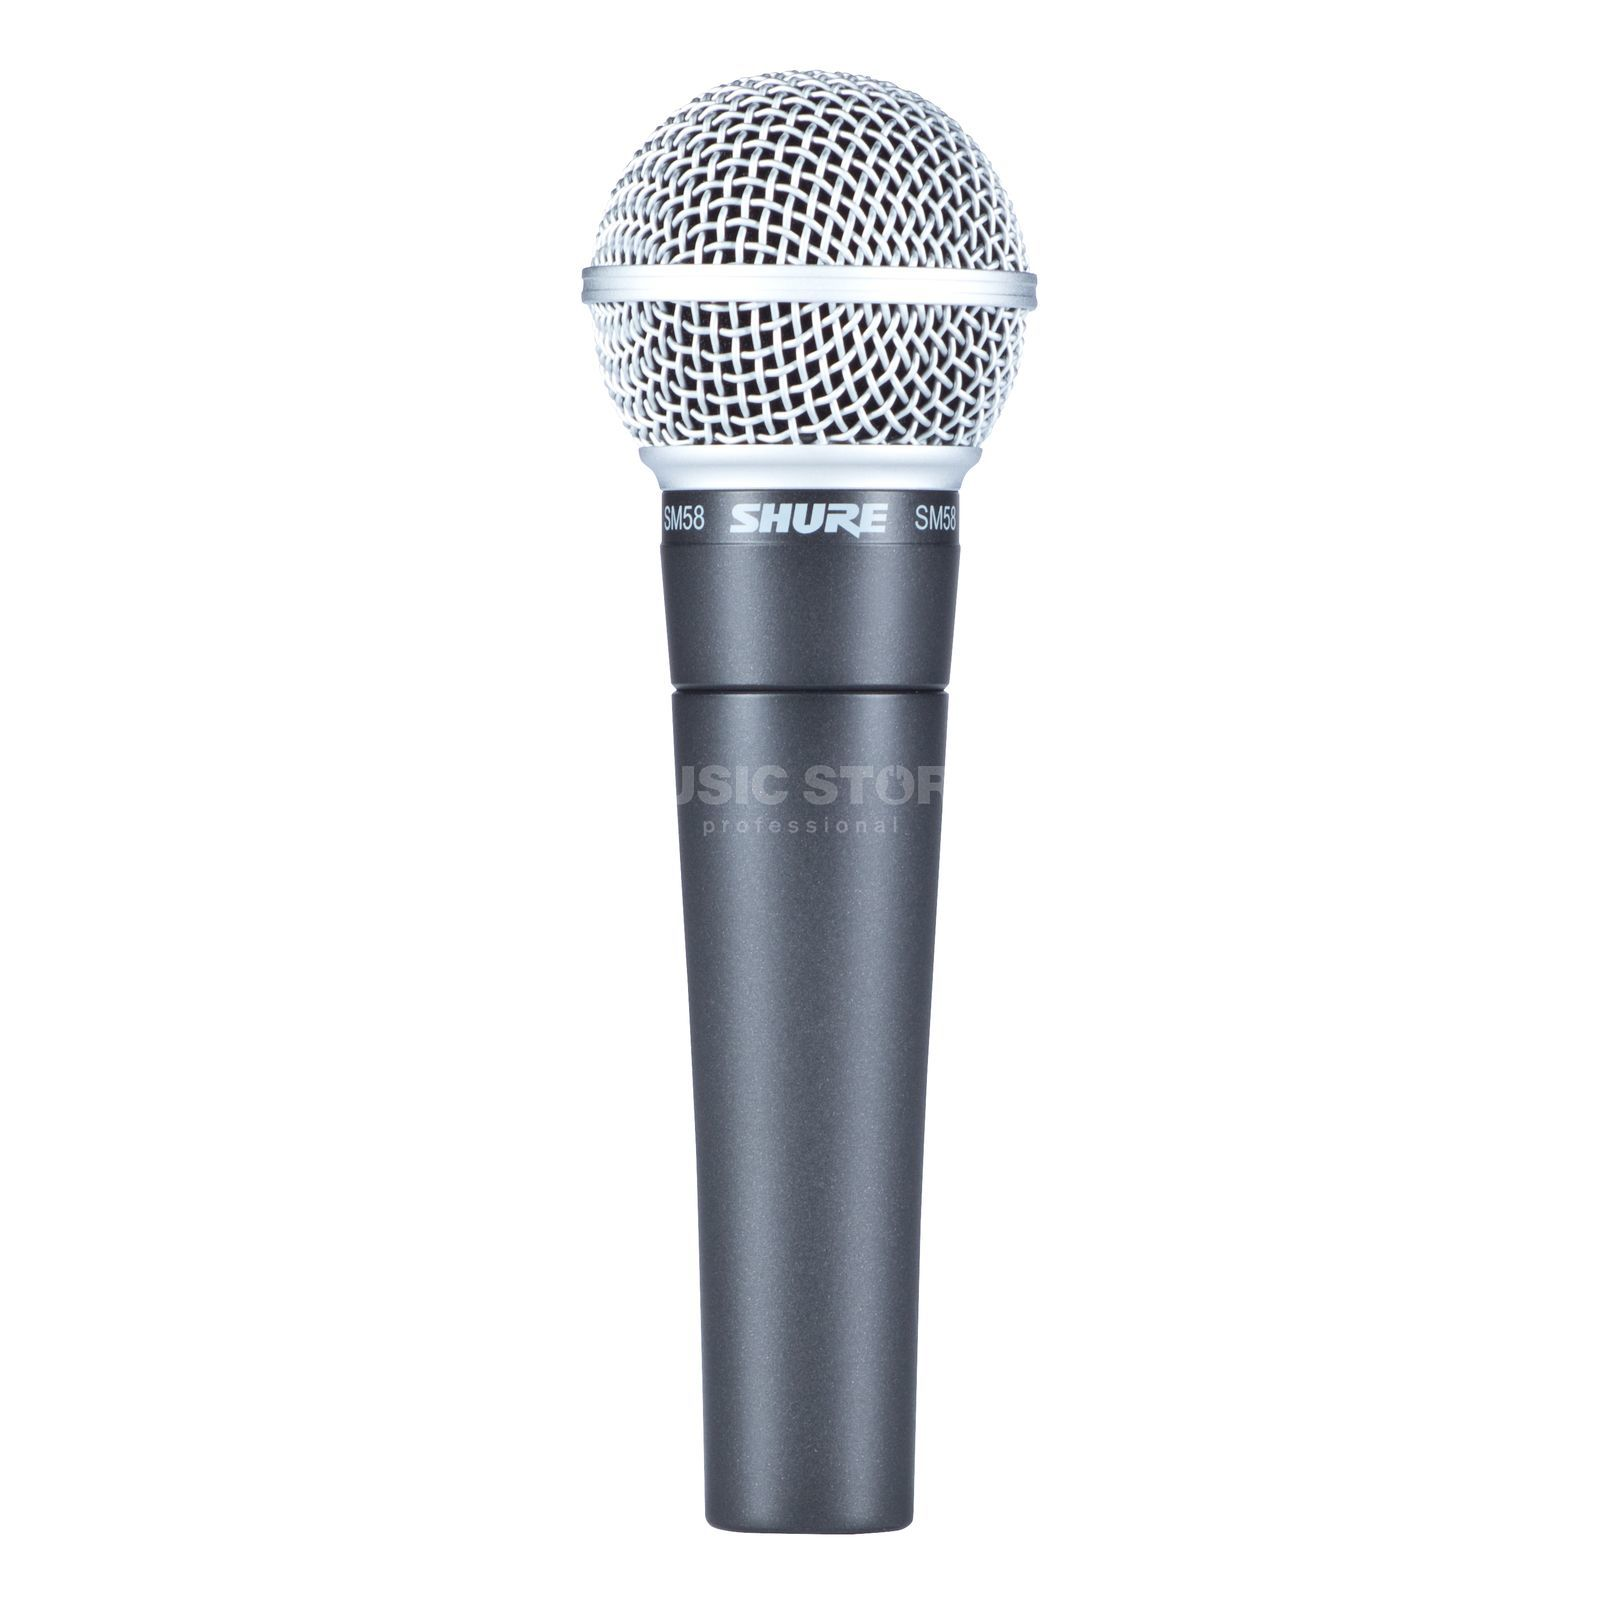 Image result for dynamic microphone